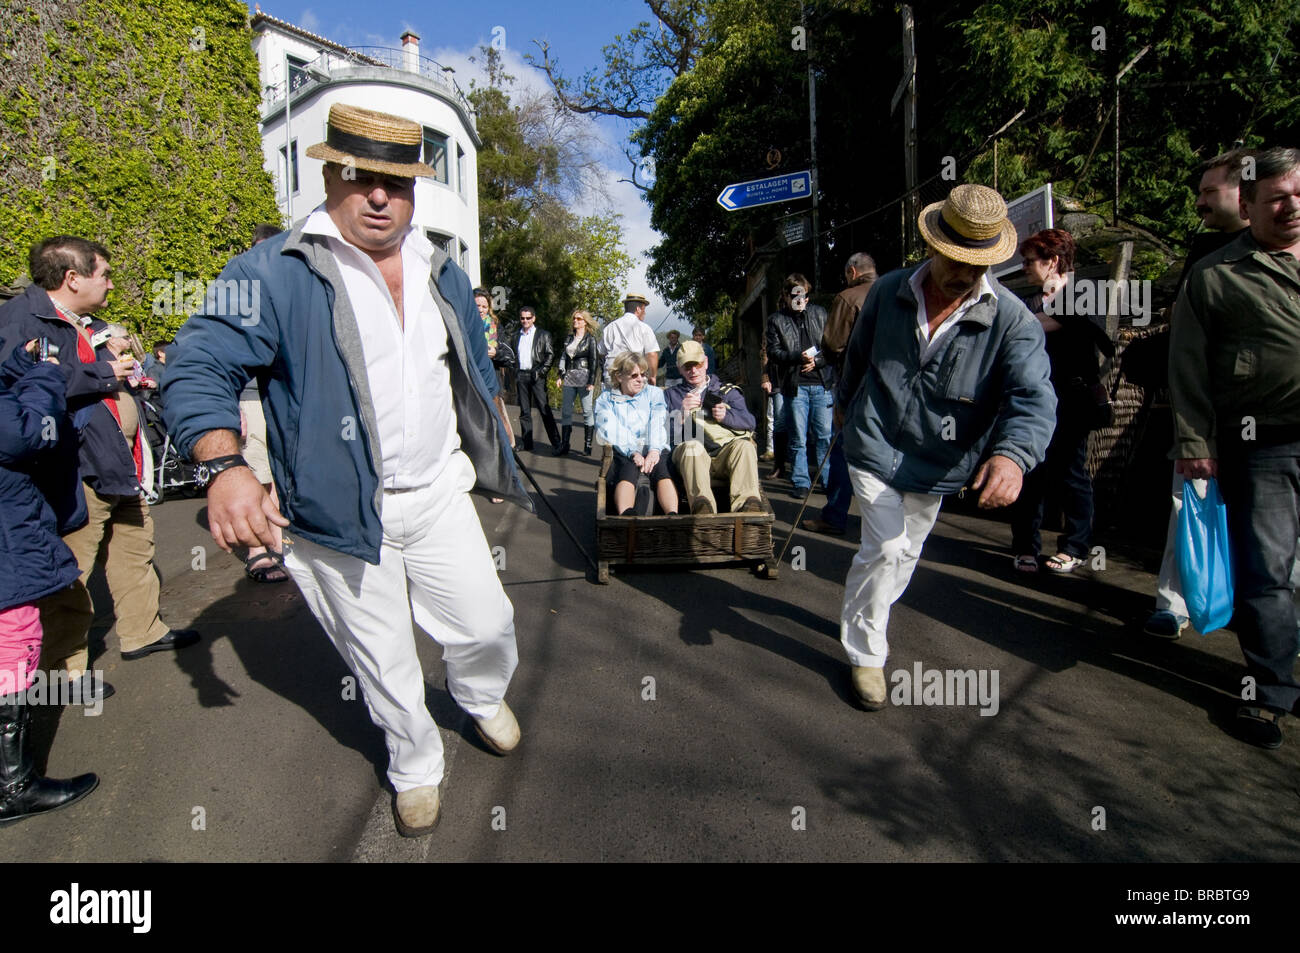 Sledge riding in Monte, above Funchal, Madeira, Portugal - Stock Image